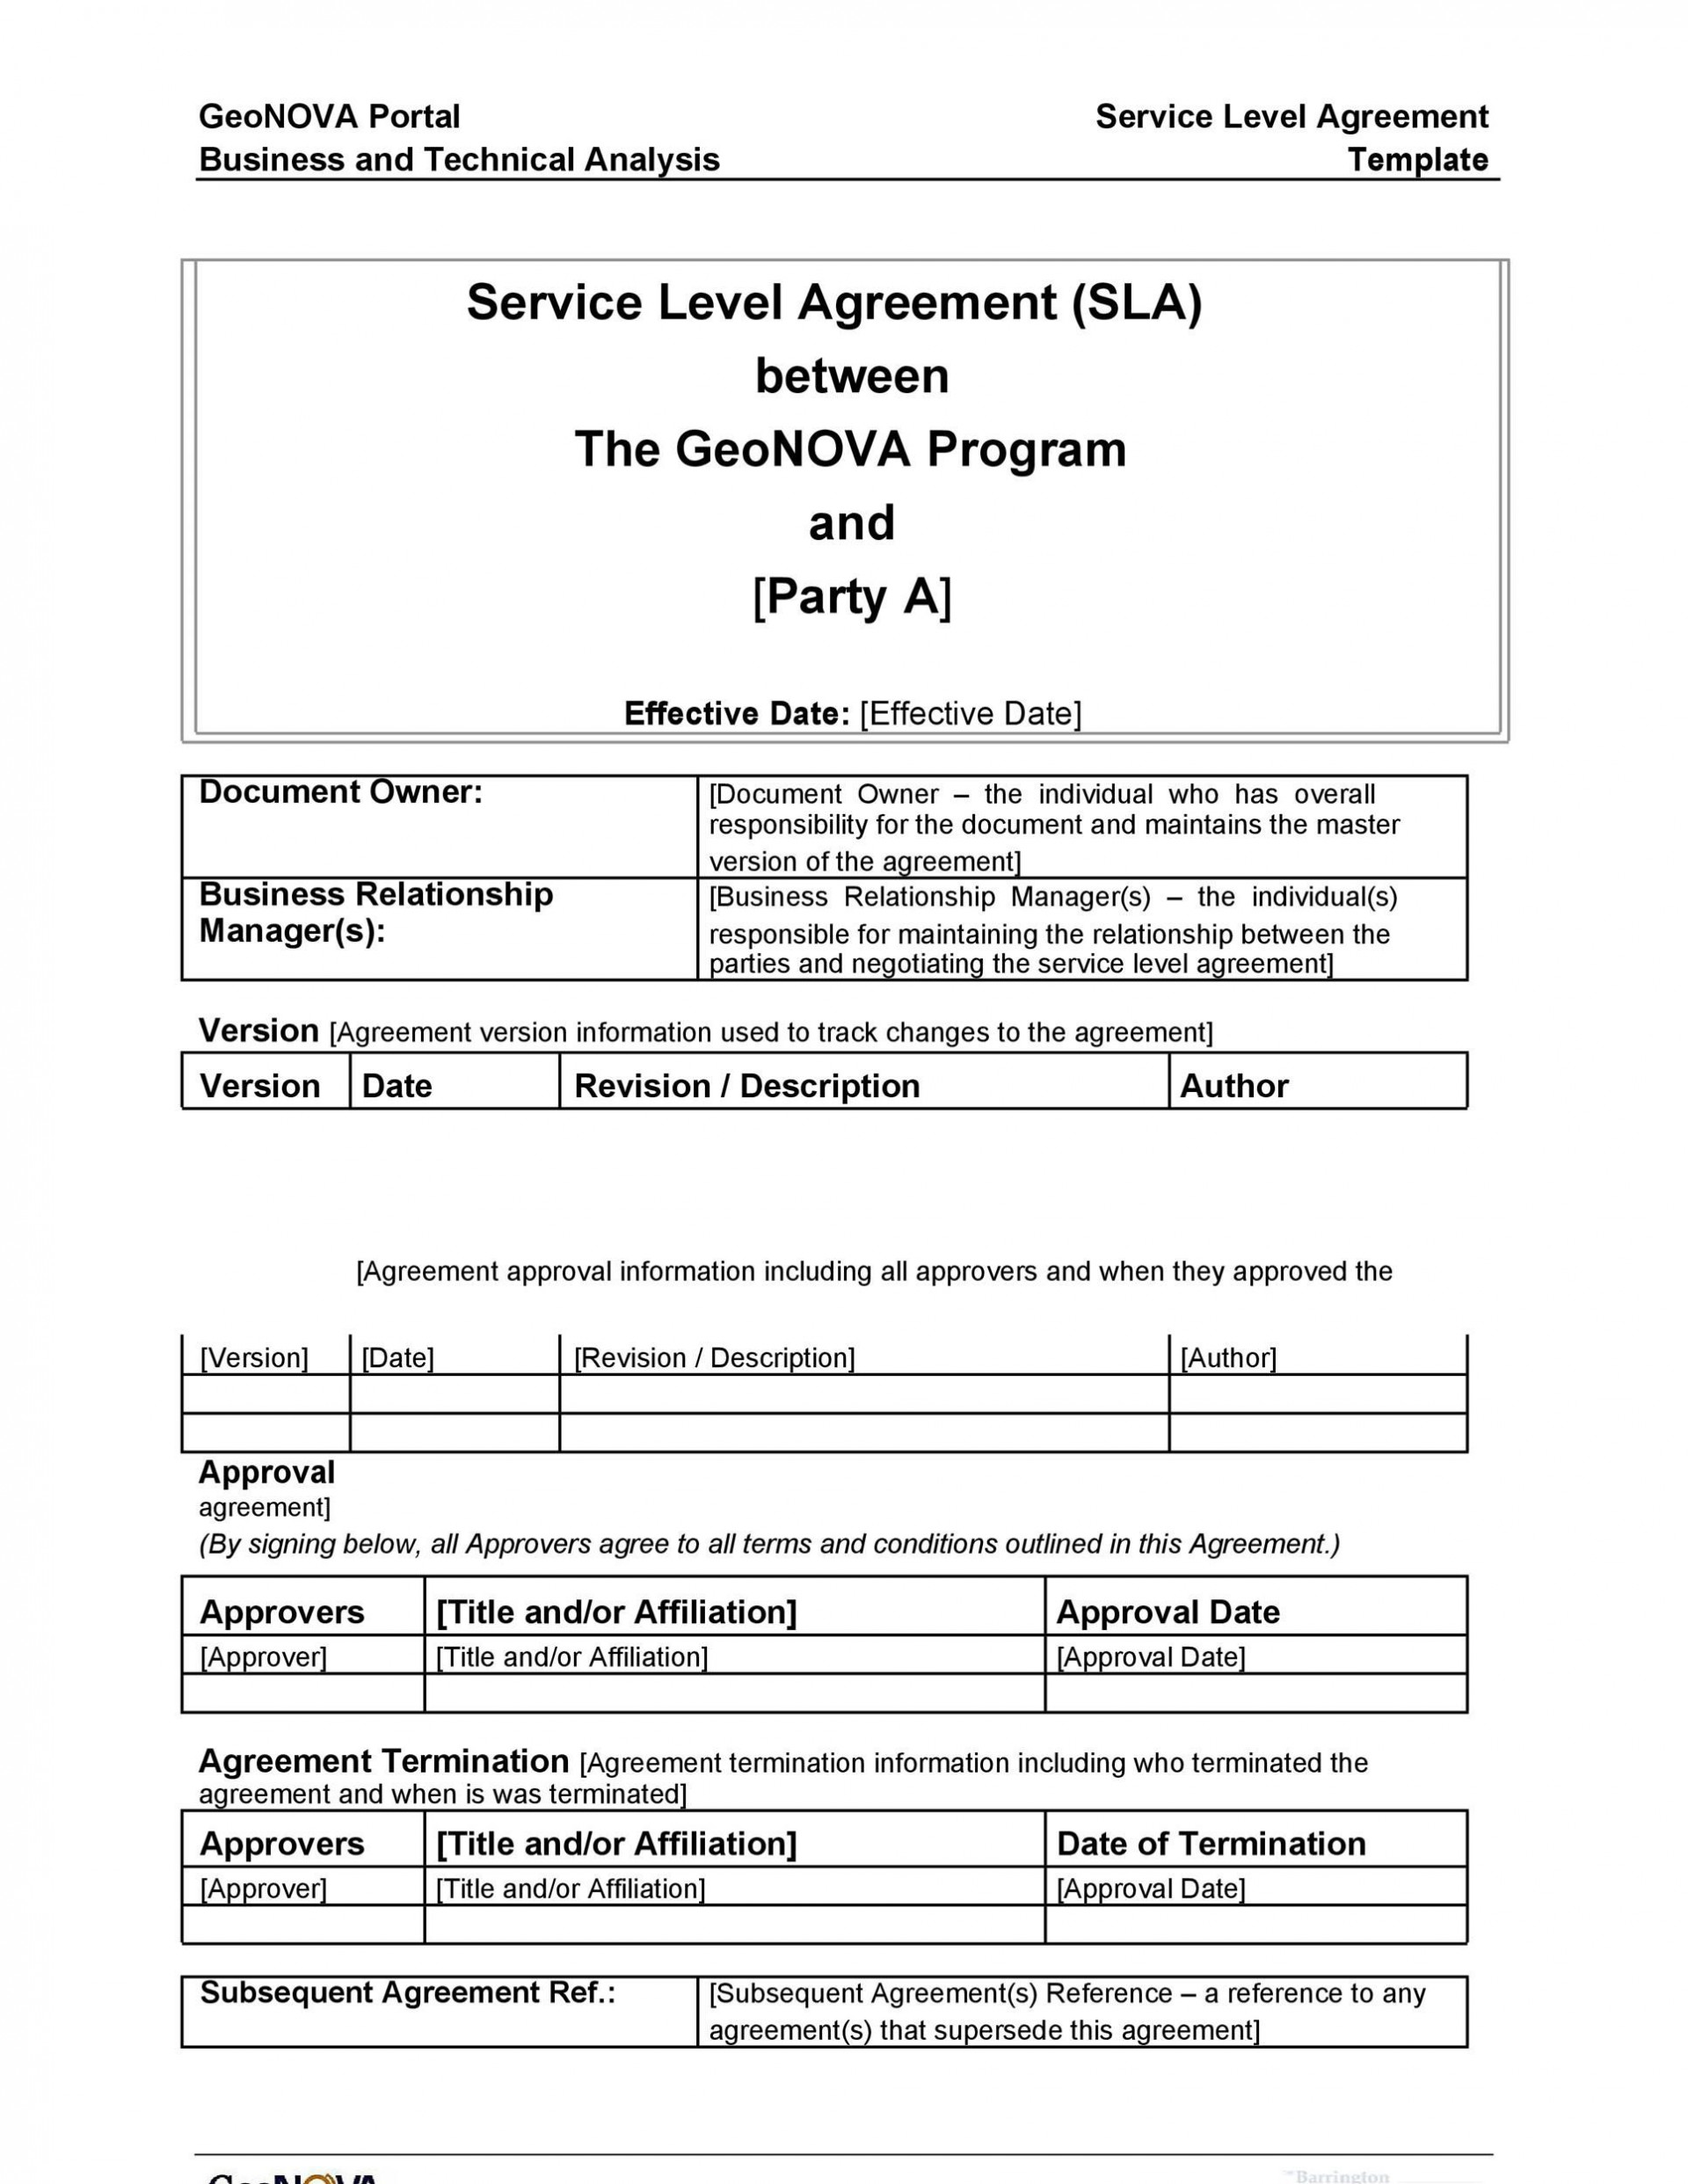 007 Fearsome Service Level Agreement Template Photo  South Africa Nz For Website Development1920